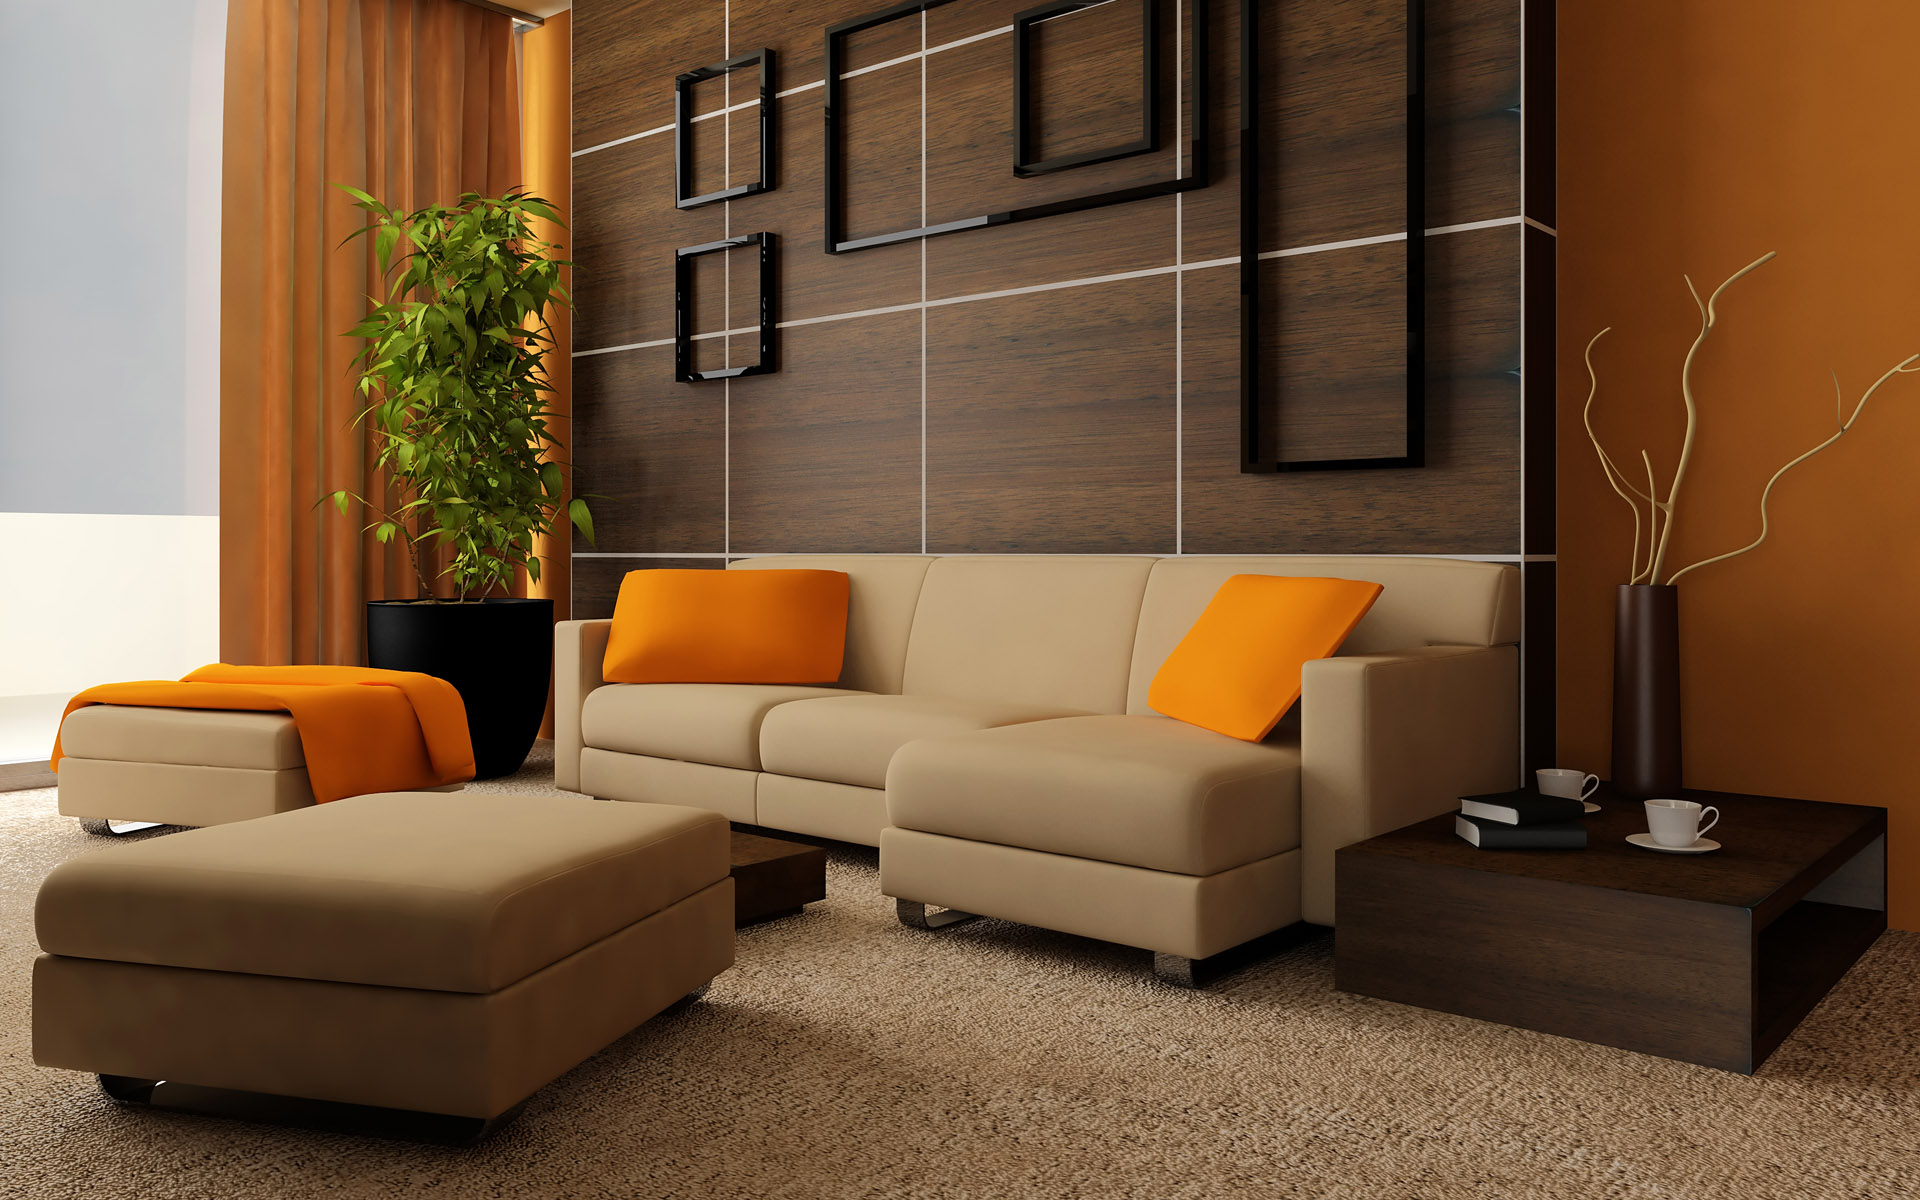 Cool Apartment Presentation 1615 wallpaper